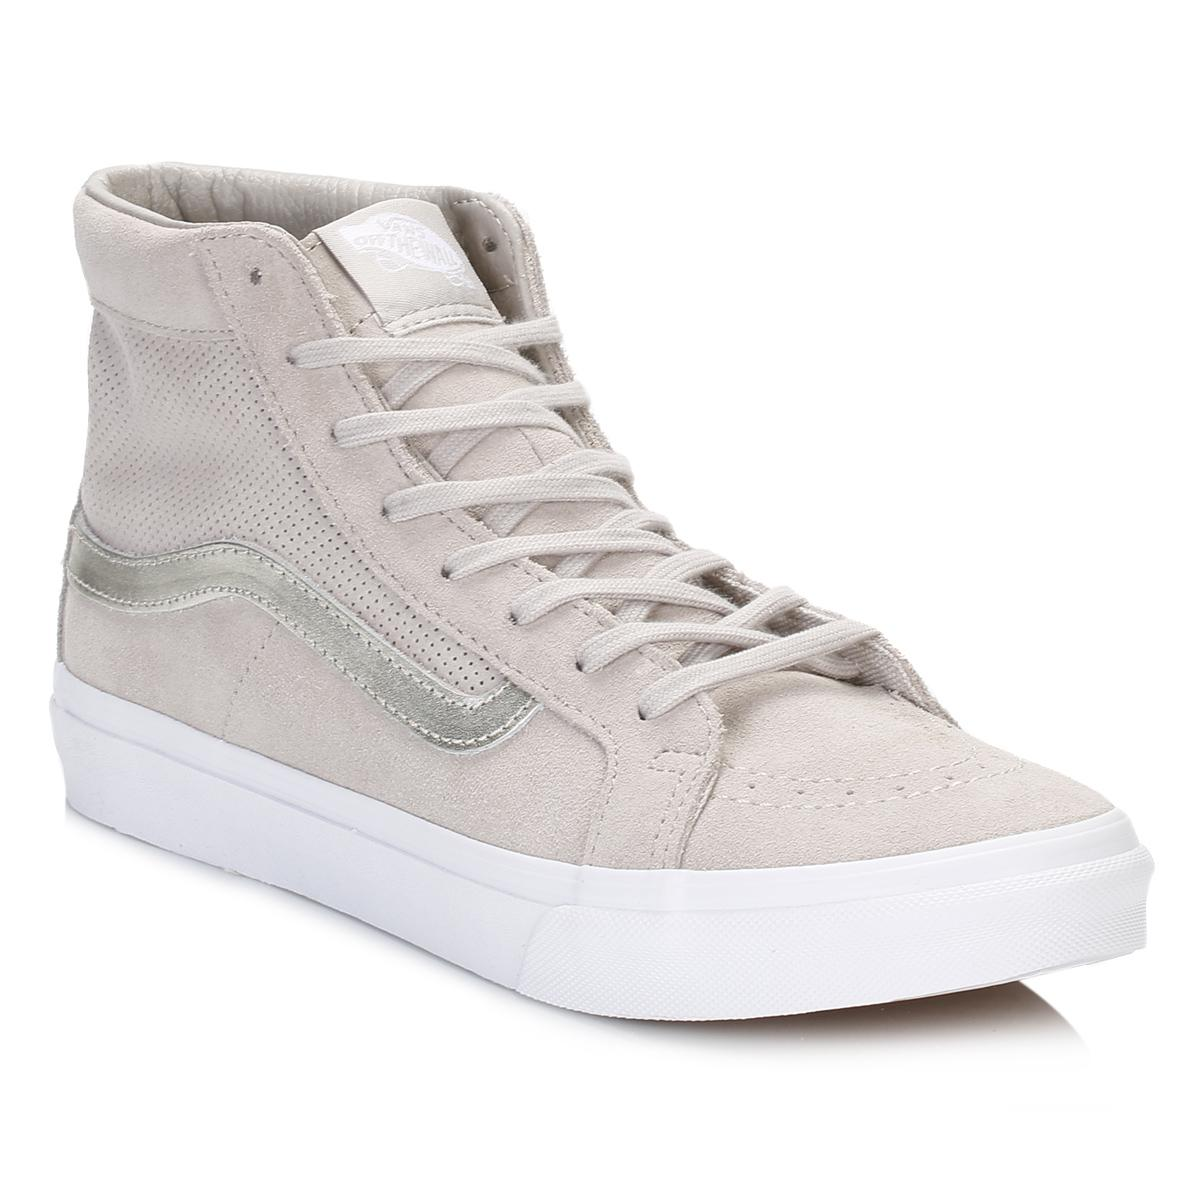 Lyst - Vans Womens Silver Cloud true White Perforated Suede Sk8-hi ... ffefa9179